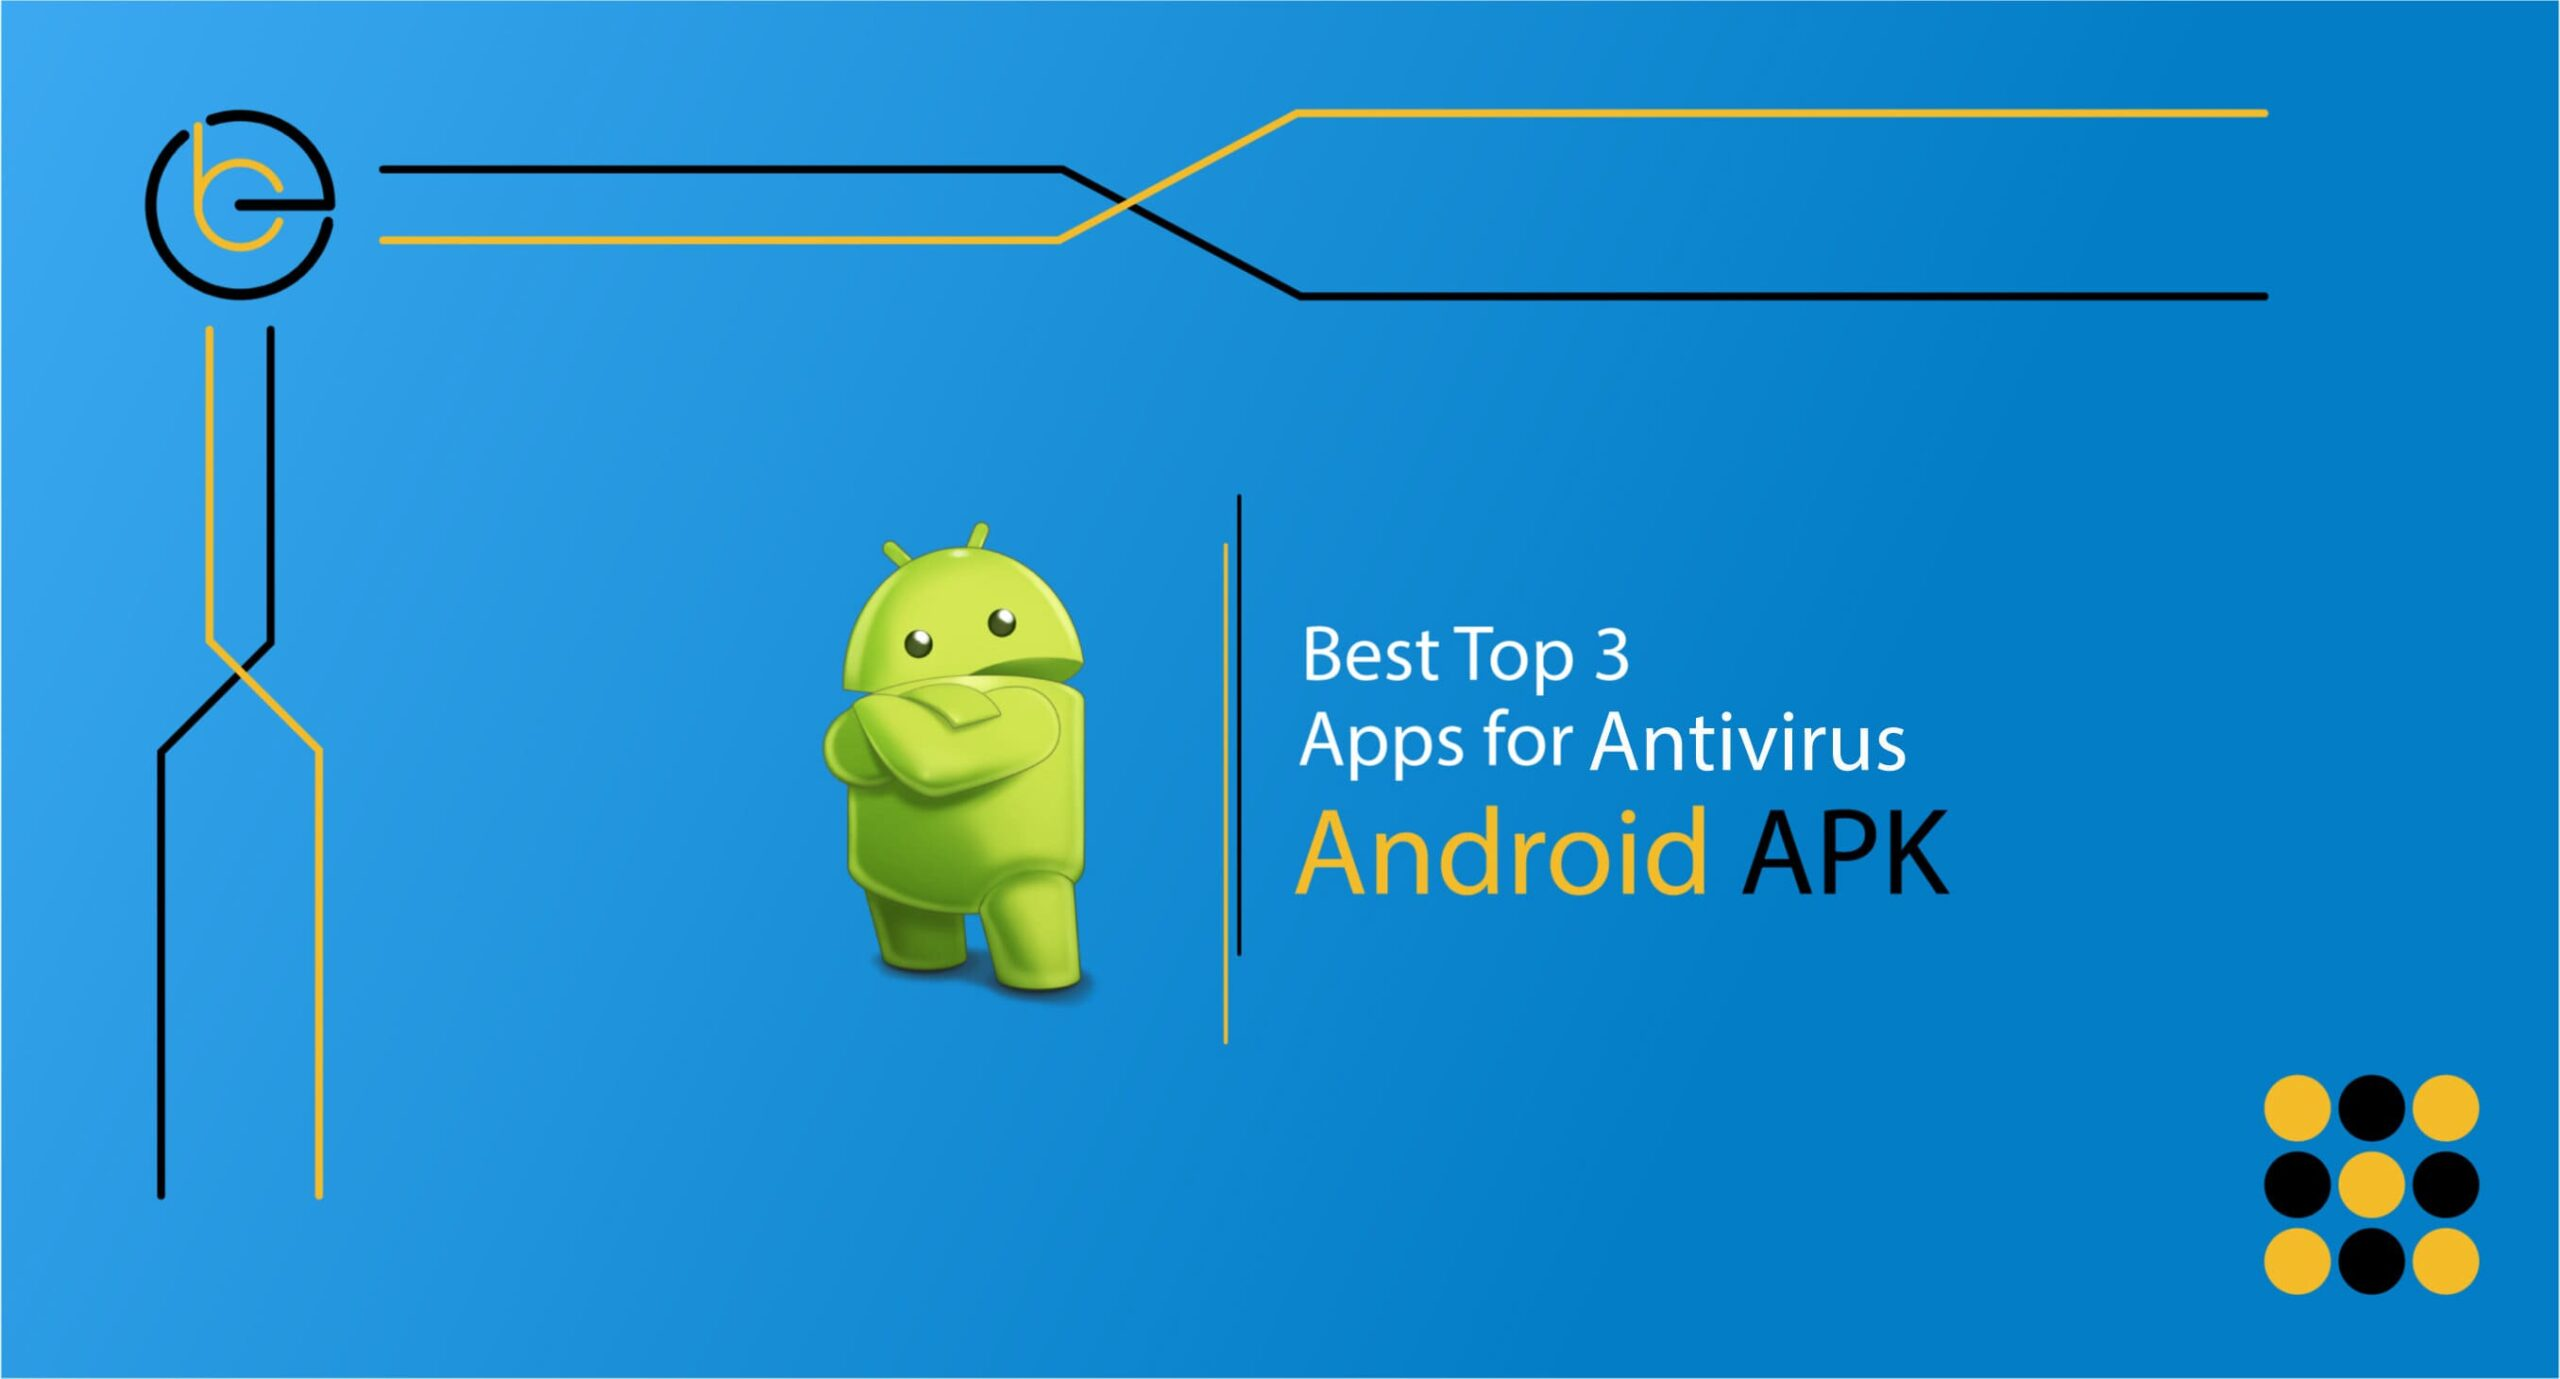 Antivirus Apps for Android APK